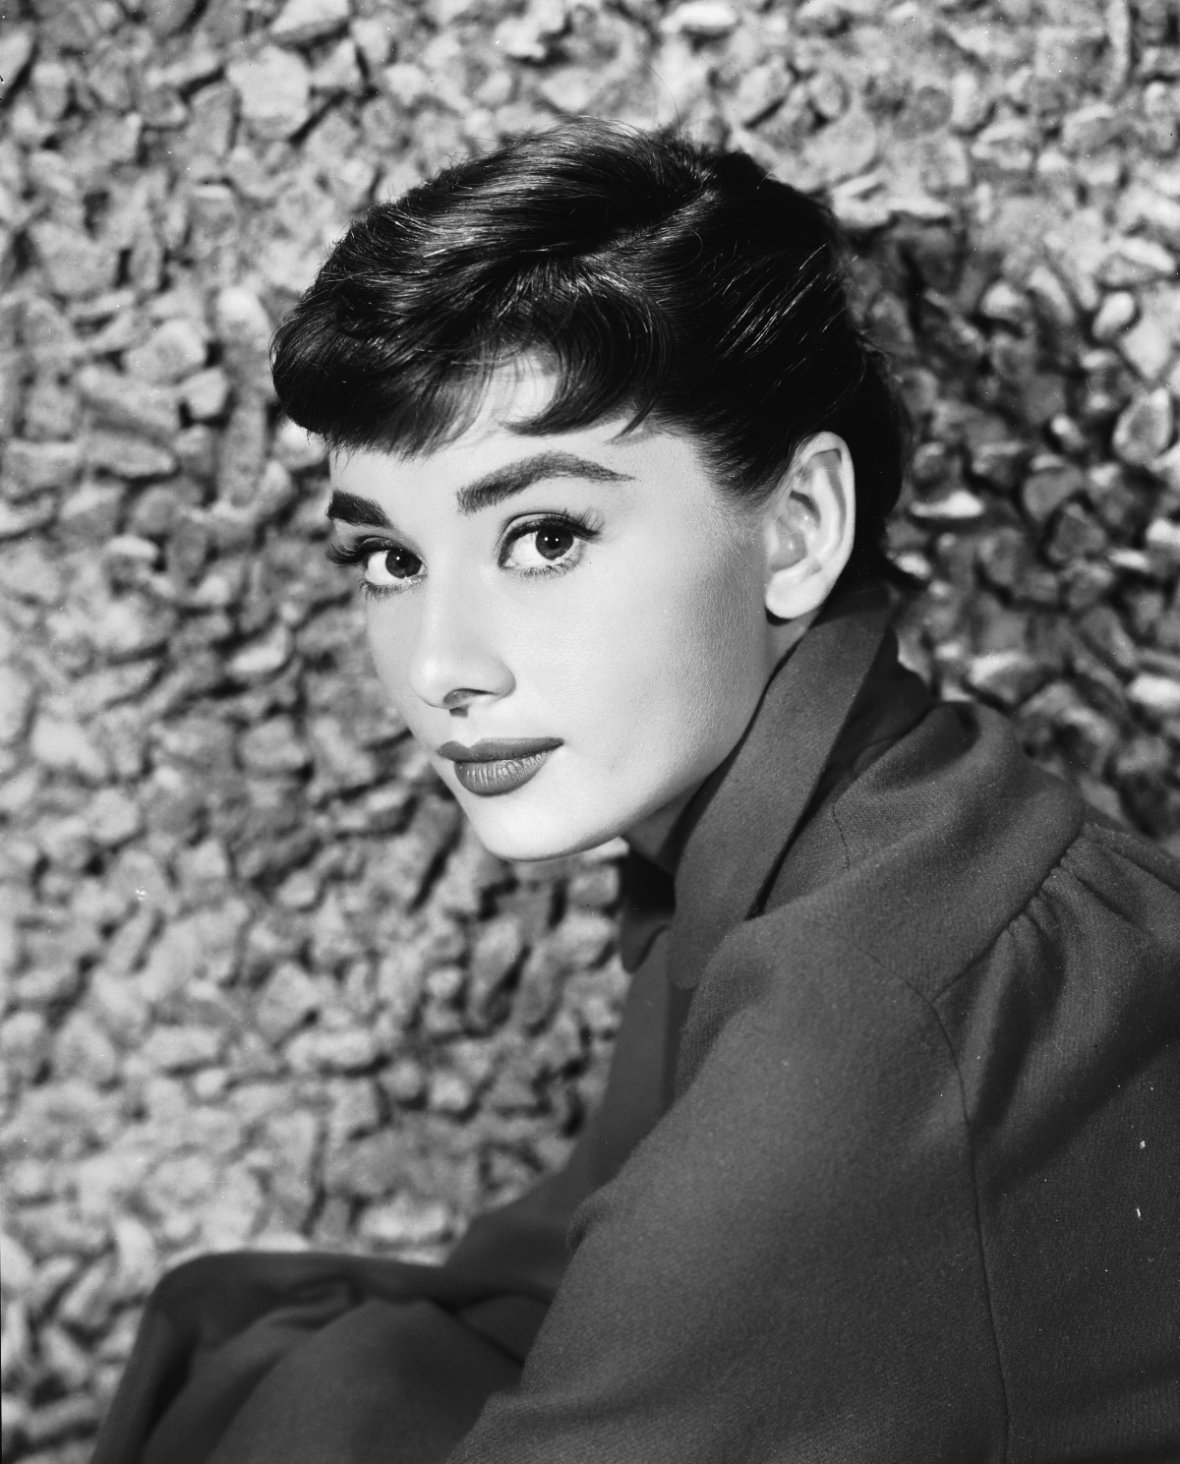 Actress Audrey Hepburn was widely regarded as one of the most beautiful and stylish women in the world